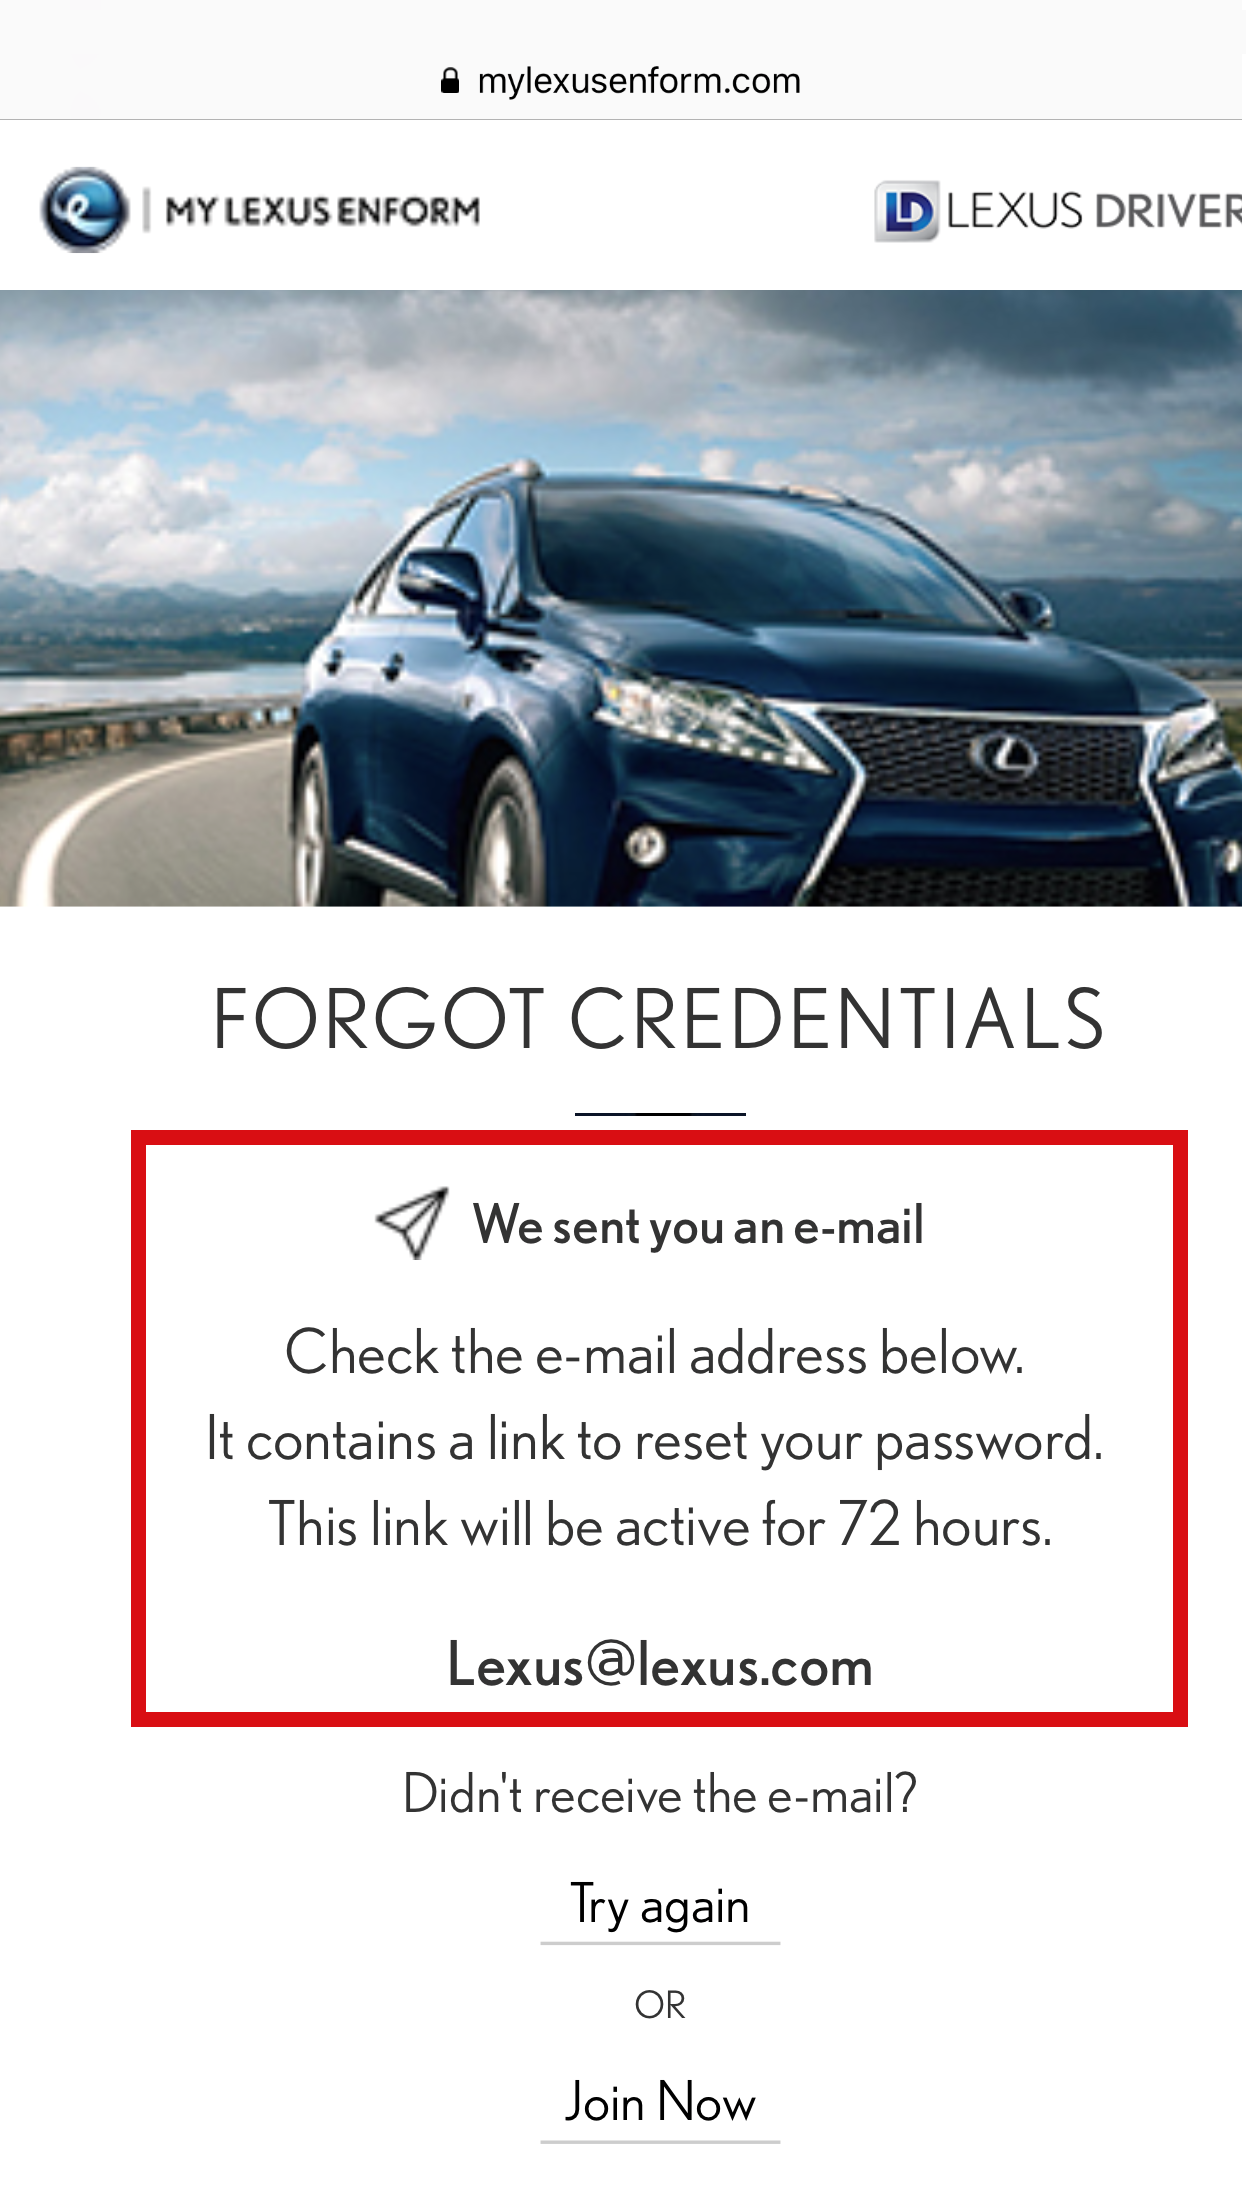 How can I reset my password for my Lexus Enform - Remote App?